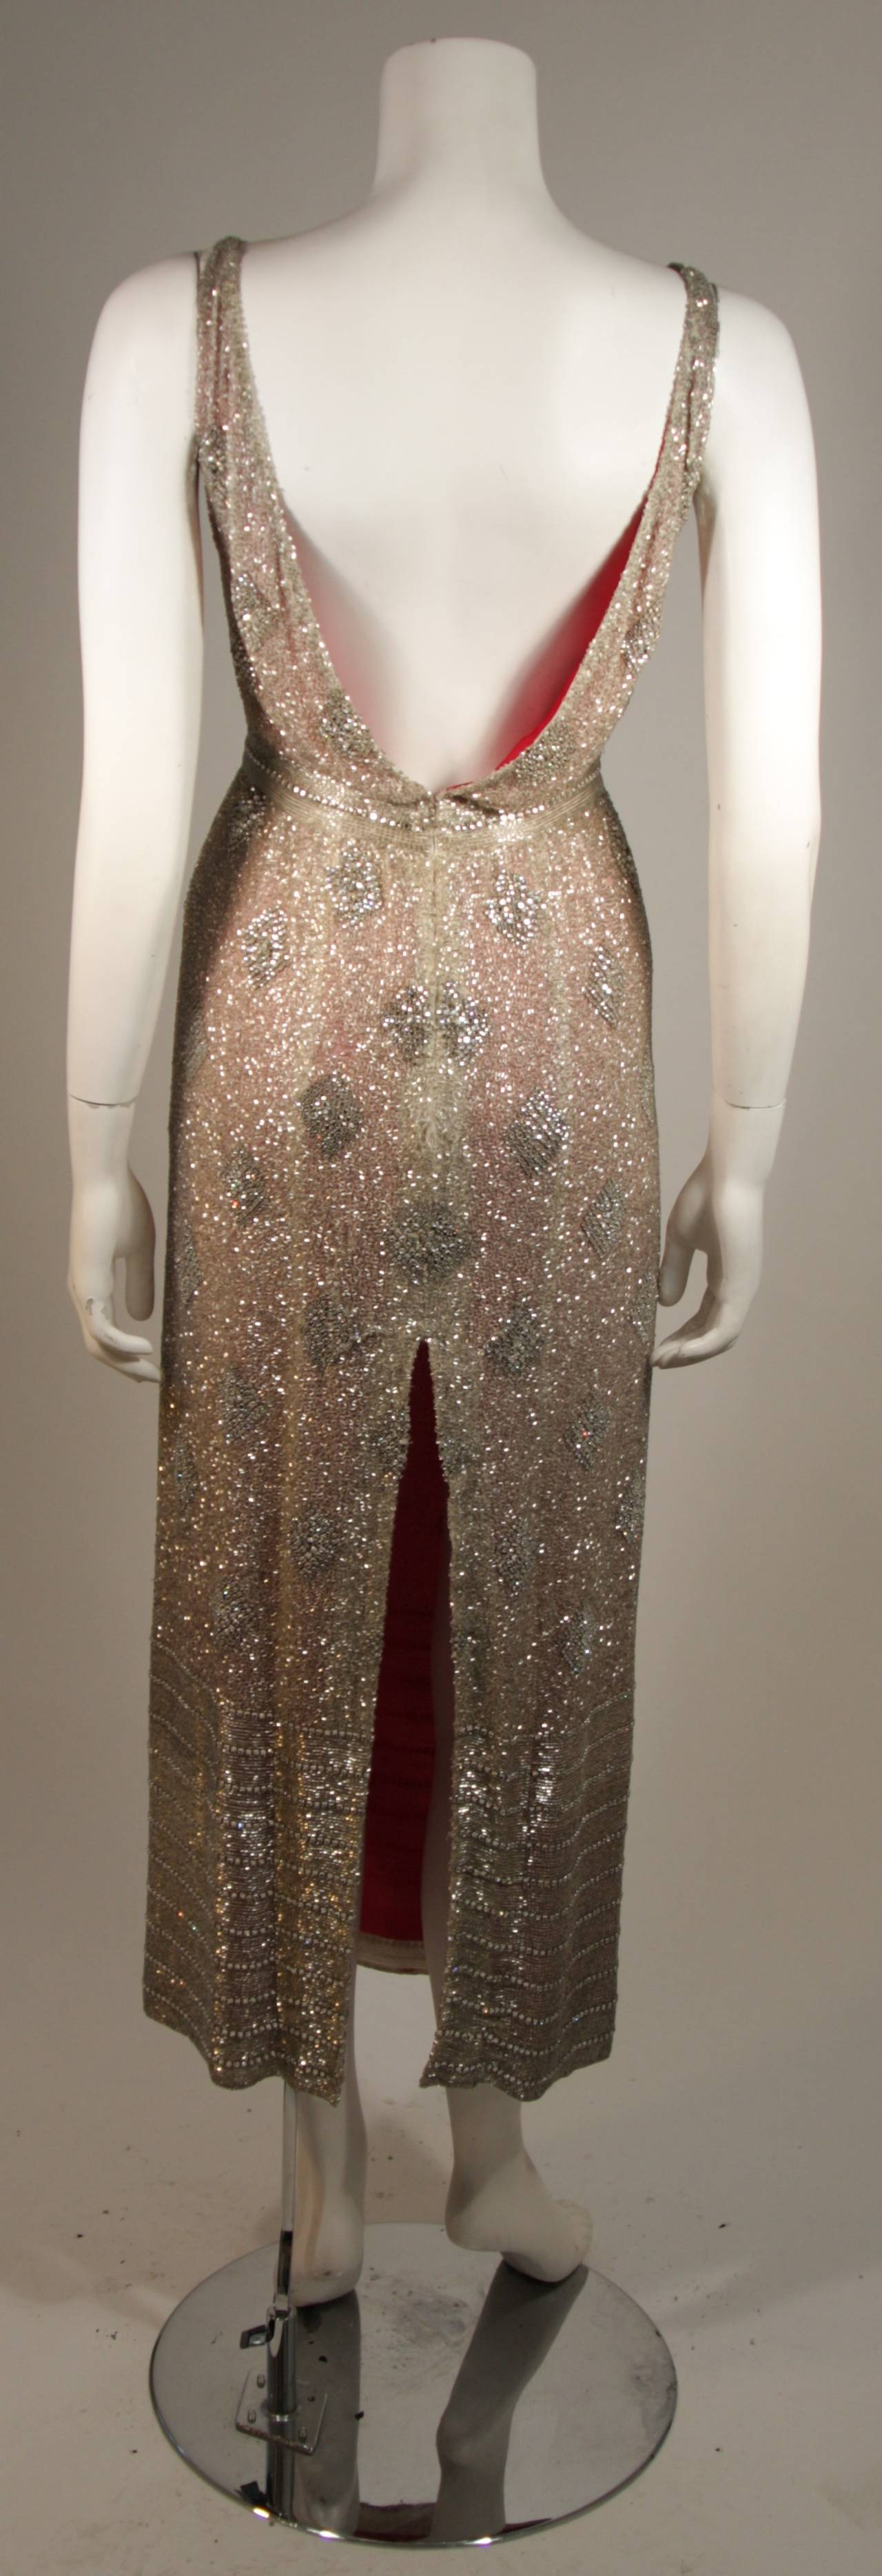 Silver Hand Beaded Rhinestone Gown w Raspberry Silk Lining & Back Slit Size S For Sale 2